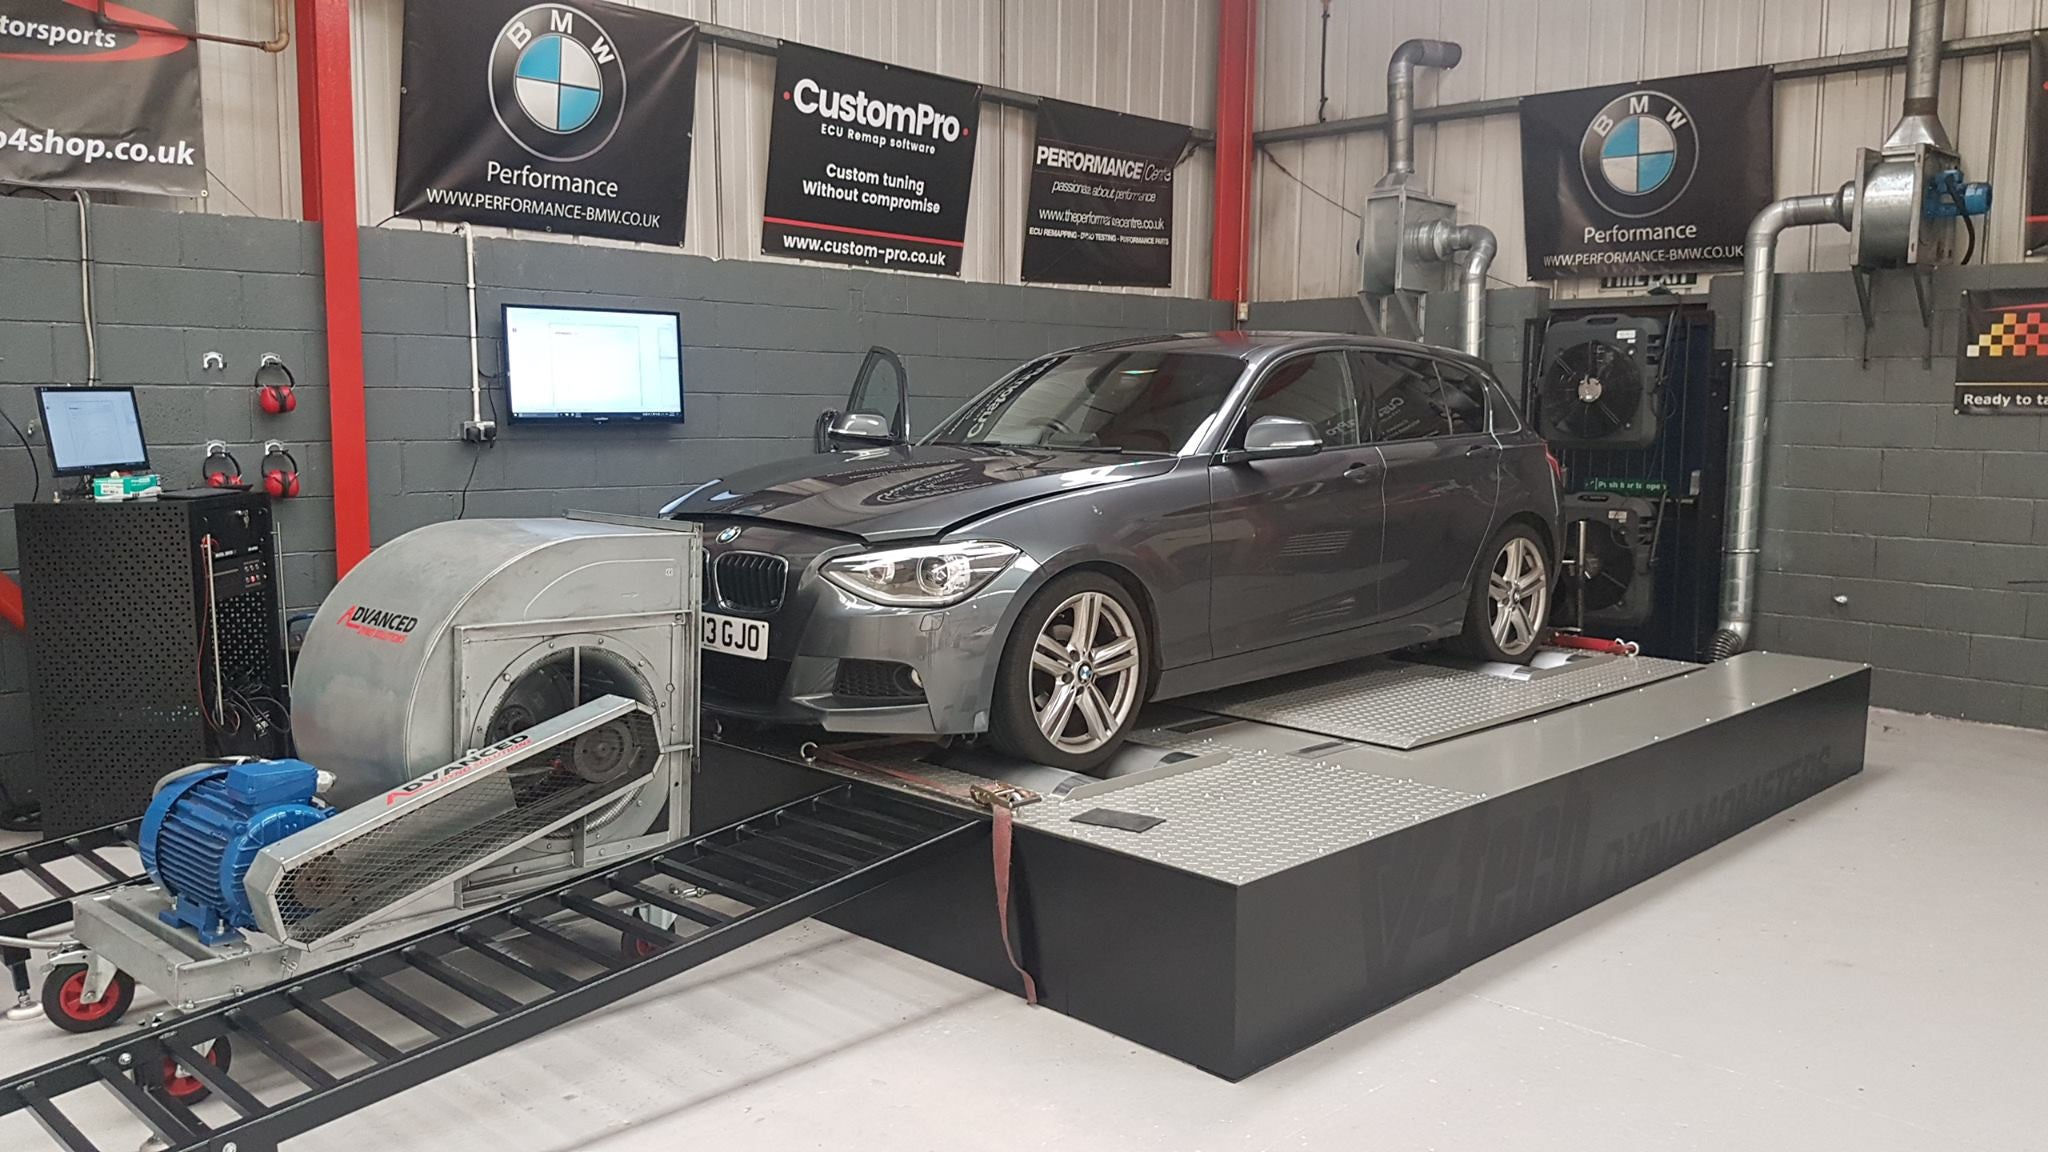 BMW 118d F Series 143 - CustomPro remap